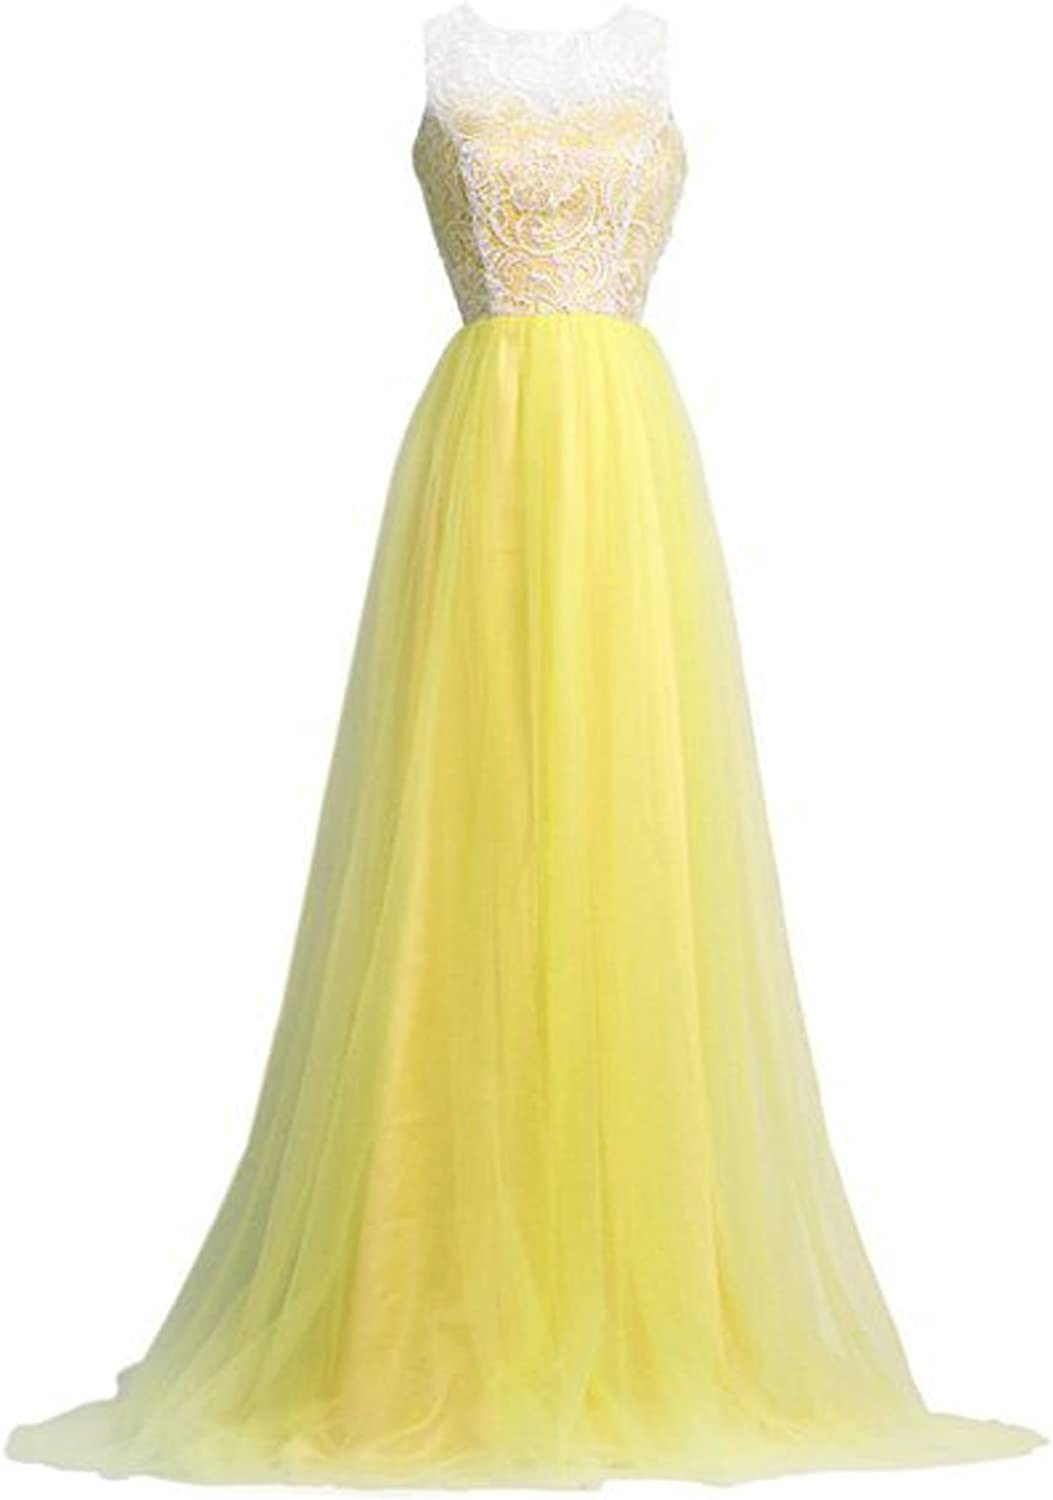 Bonnie clothing Women's Ball Gown Puffy Tulle and Lace Hollow Back Long Evening Party Gown US 16W Yellow